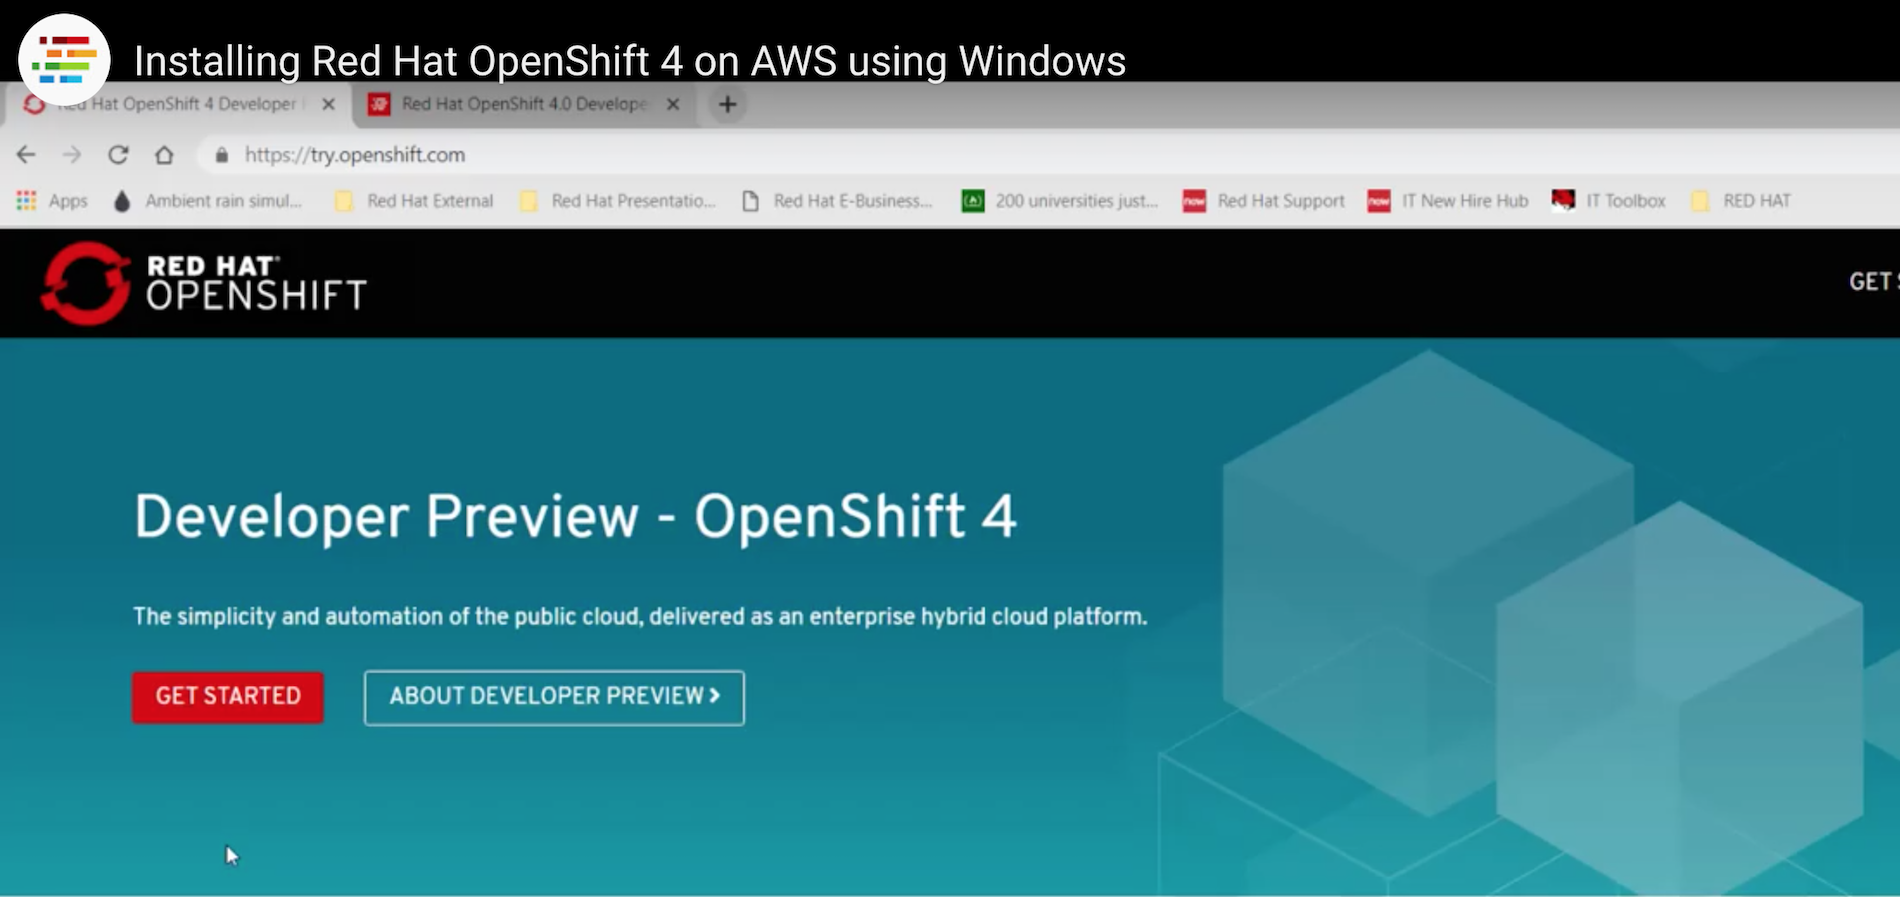 Red Hat OpenShift 4, AWS, Windows, and a video